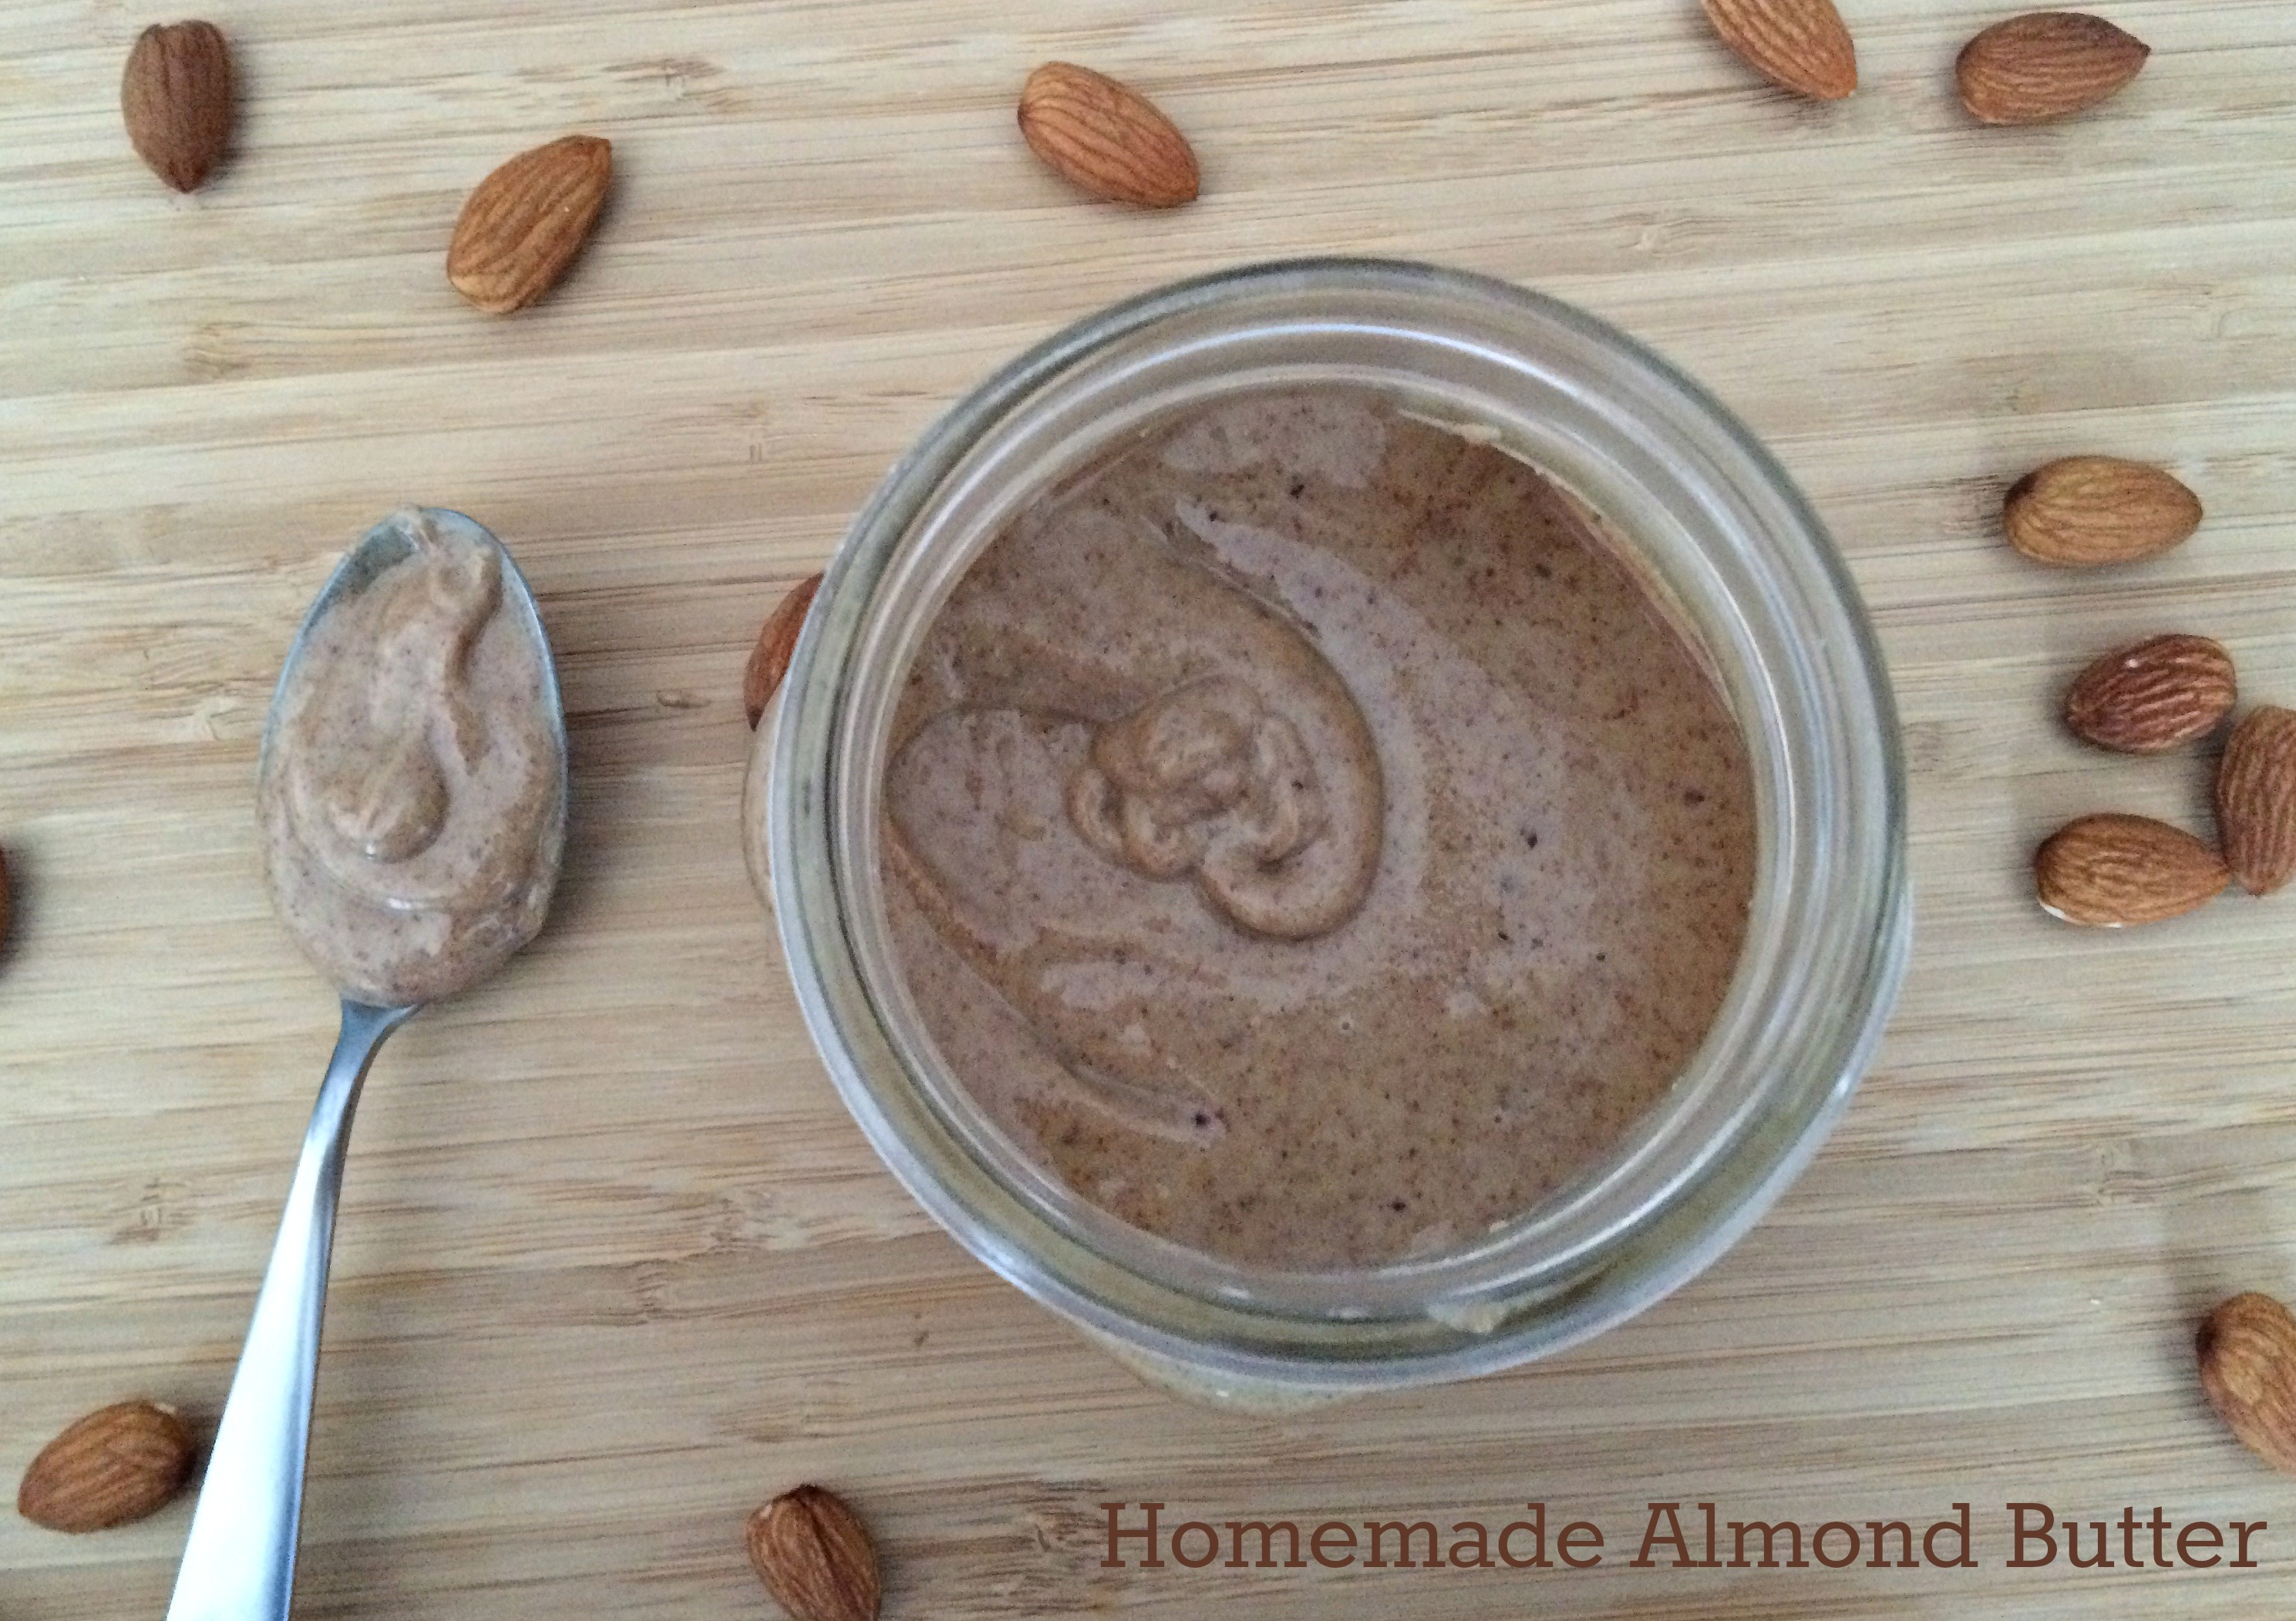 Homemade Almond Butter | RD in the Midwest